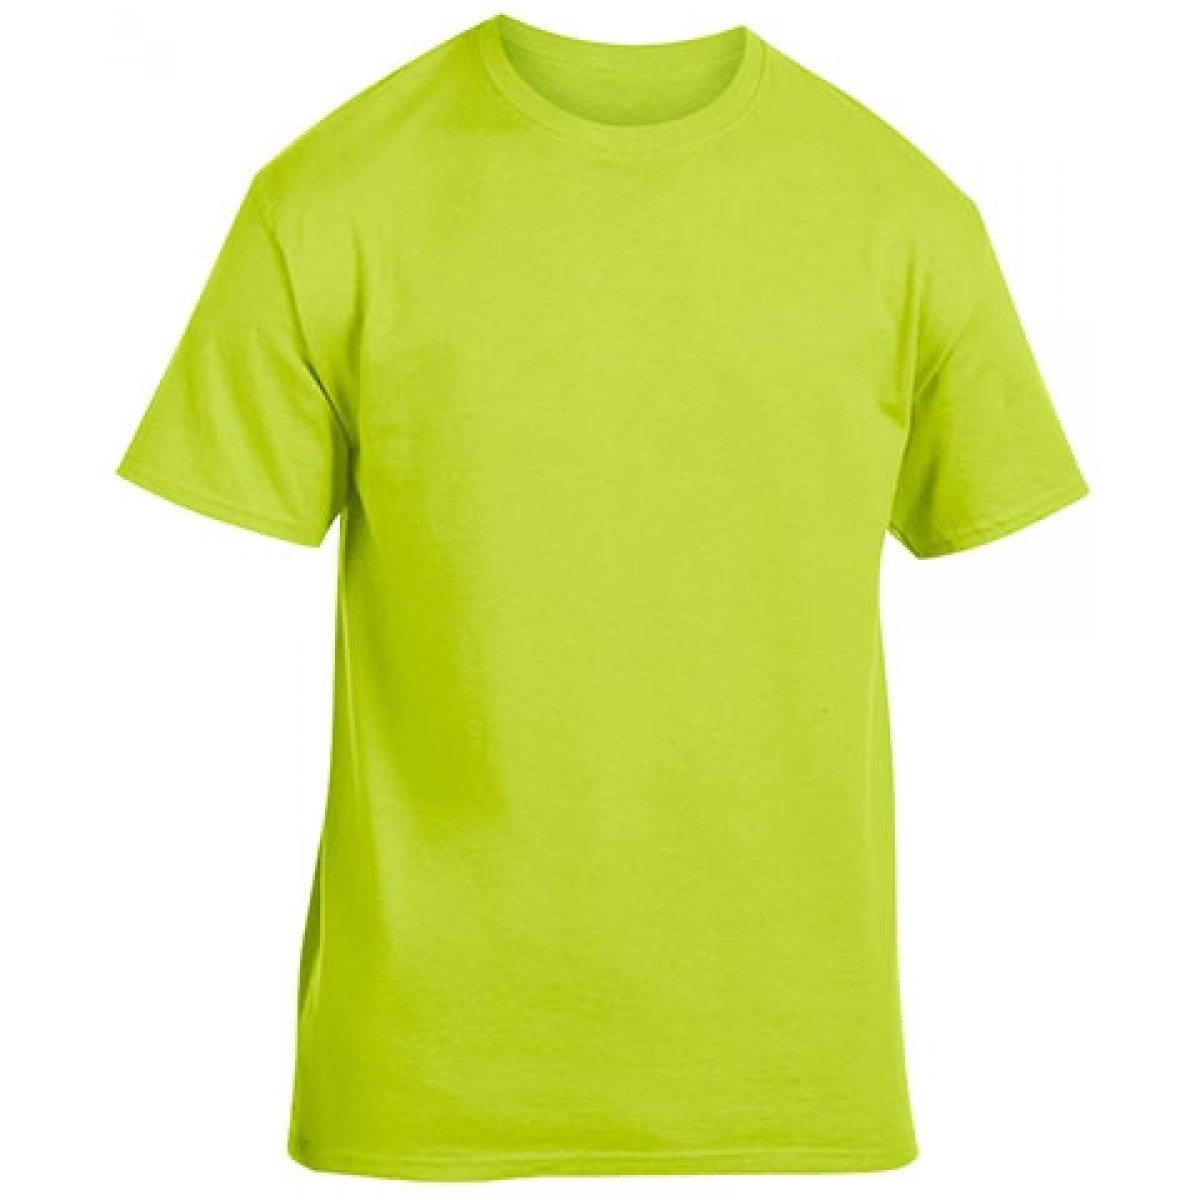 Cotton Short Sleeve T-Shirt-Safety Green-YS